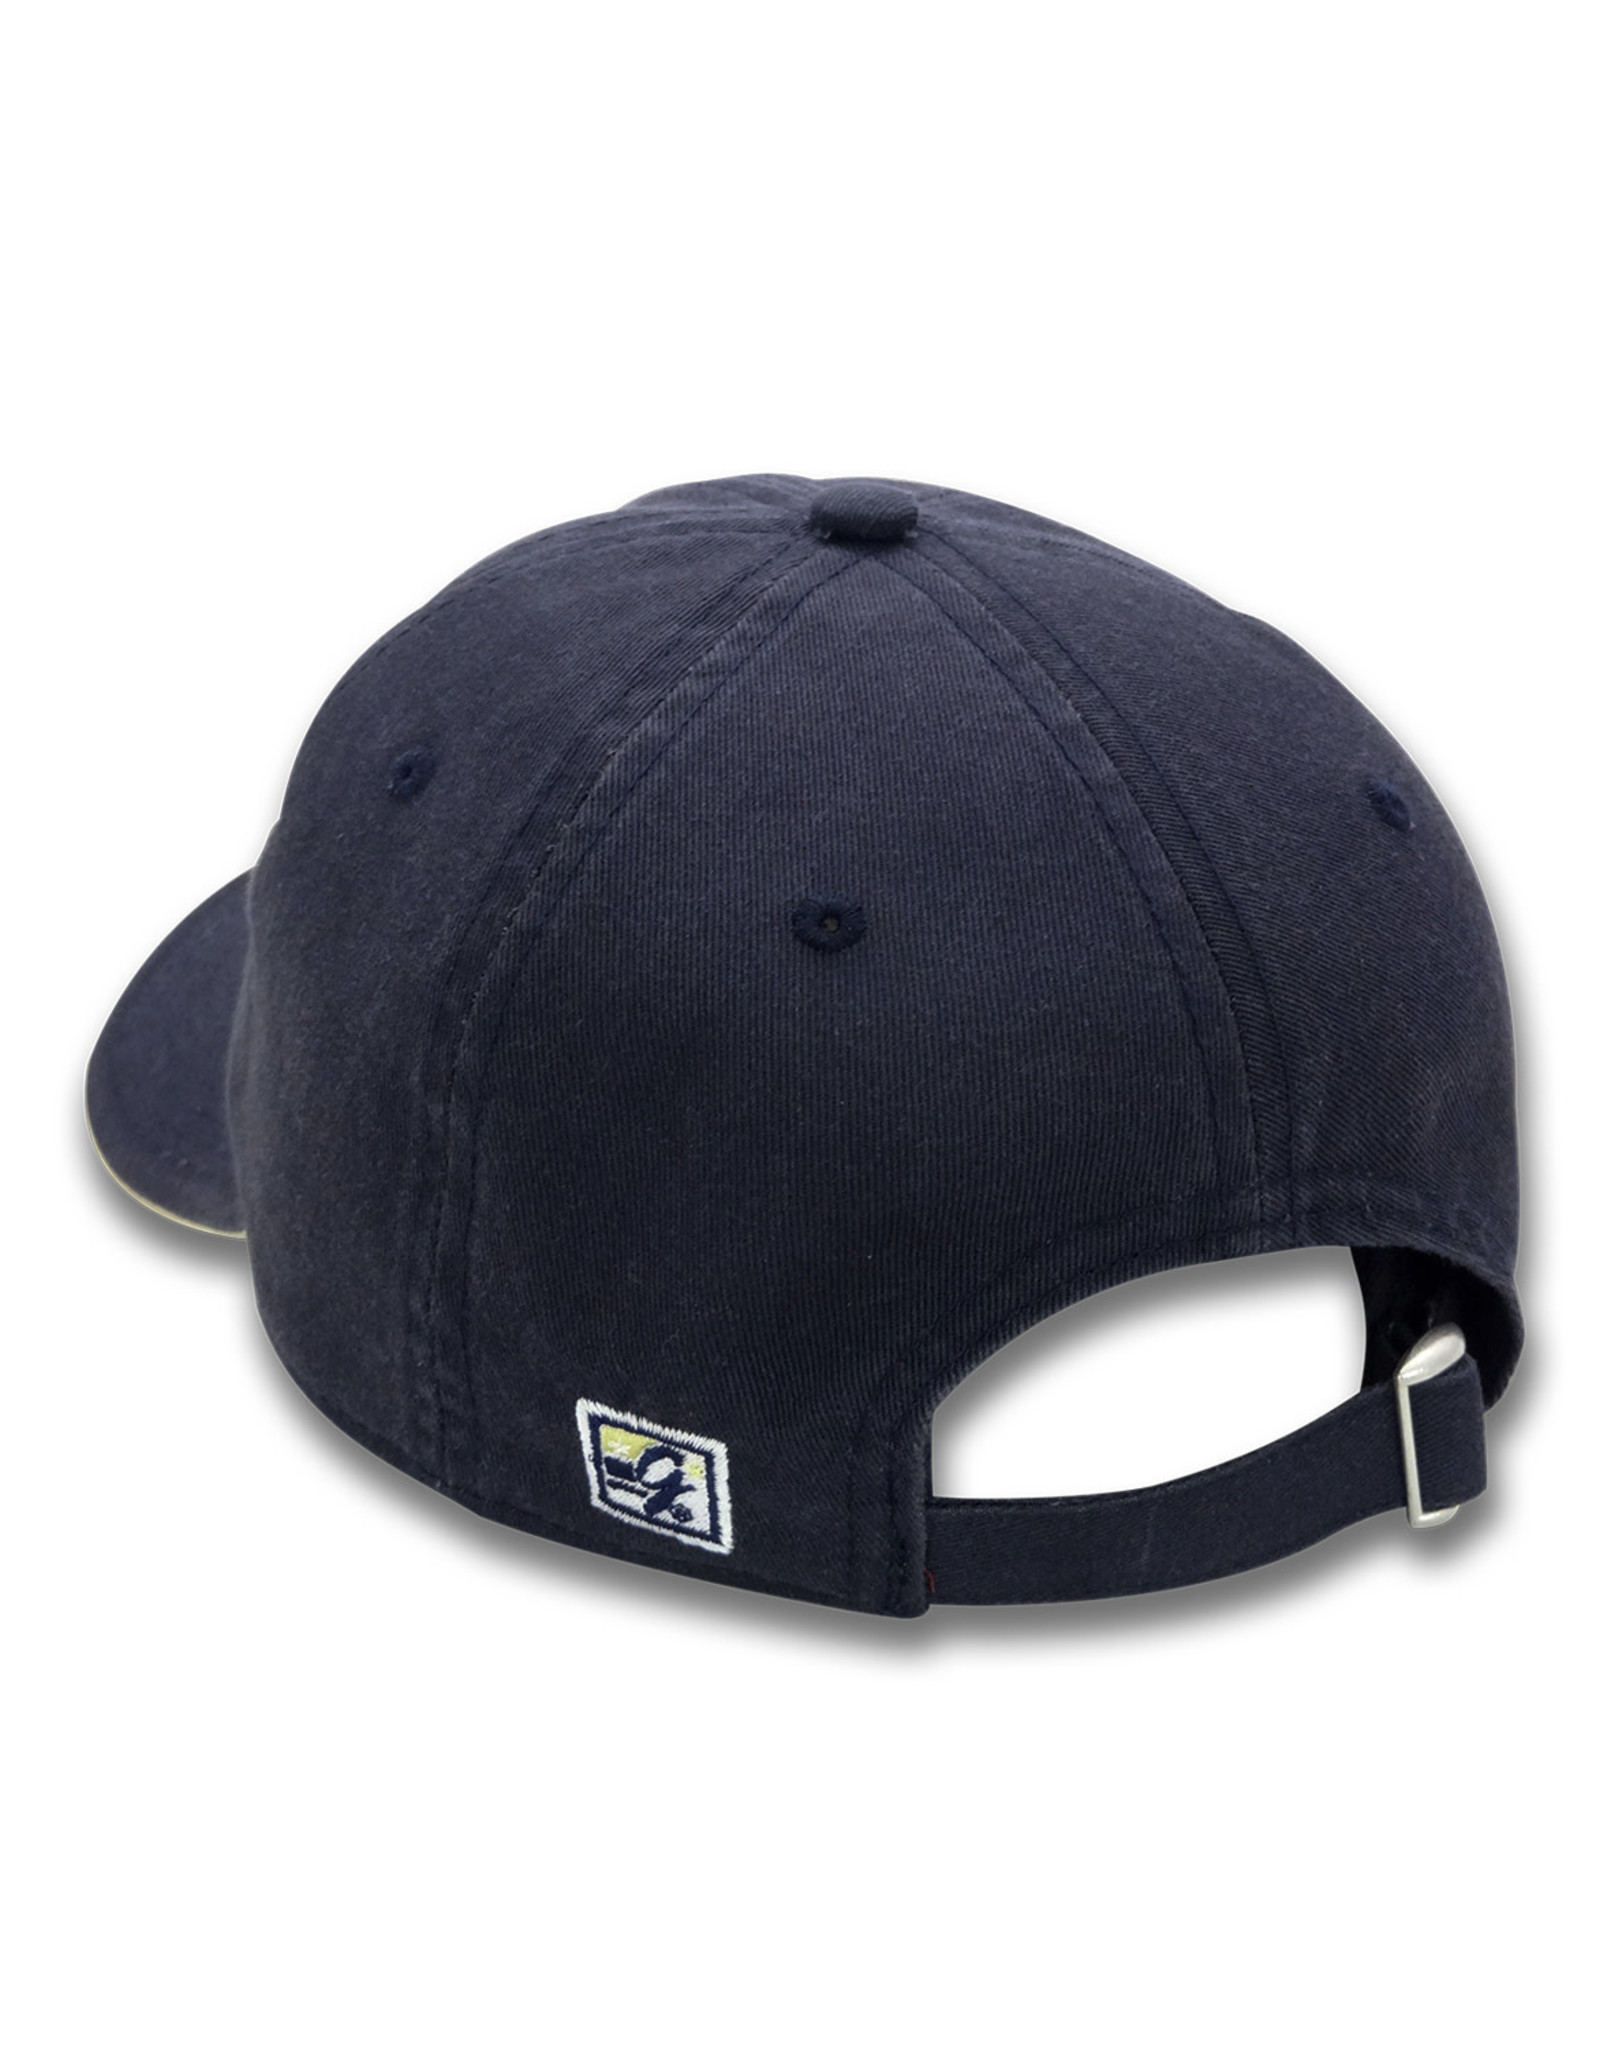 The Game Navy Hat with white W and standing bulldog